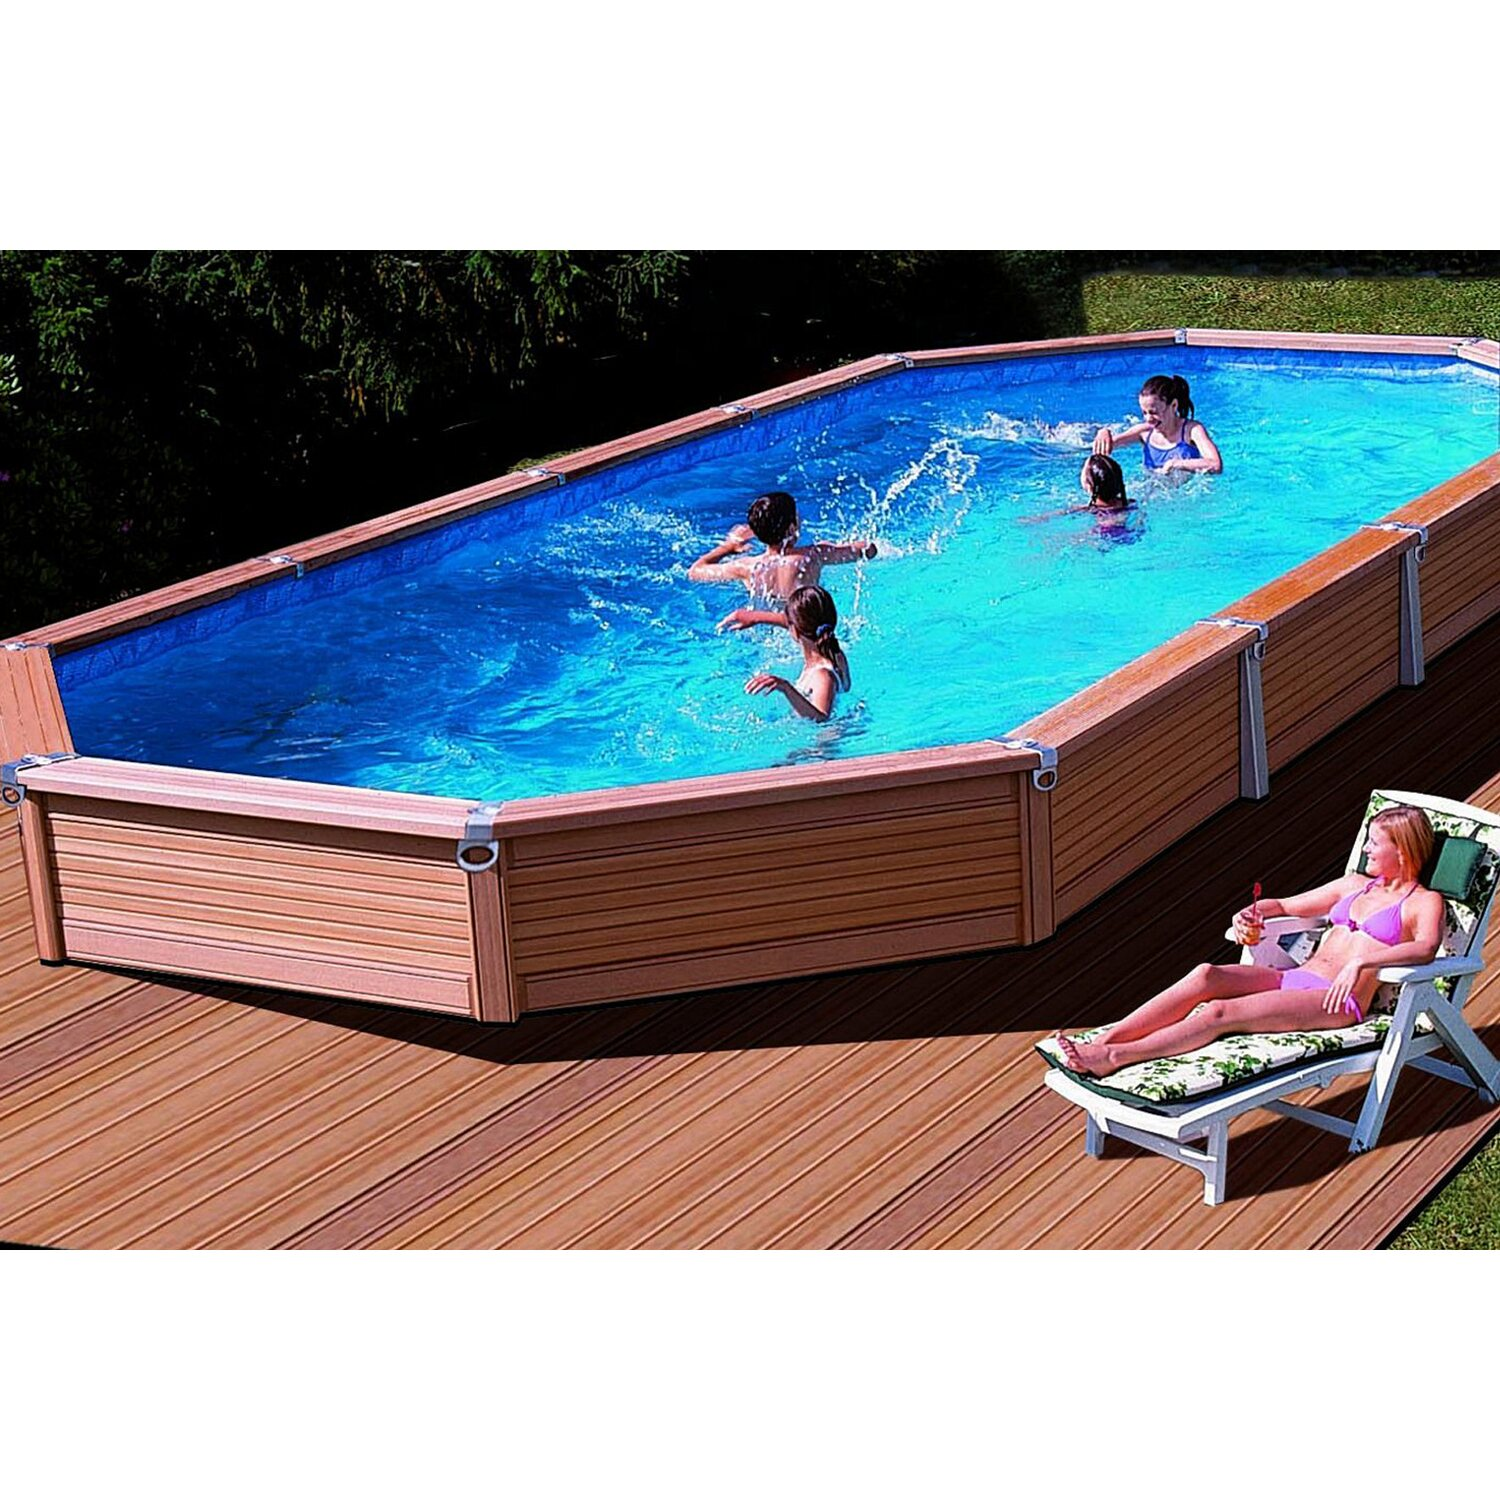 summer fun pool set azteck einbaubecken ovalform 560 cm x. Black Bedroom Furniture Sets. Home Design Ideas